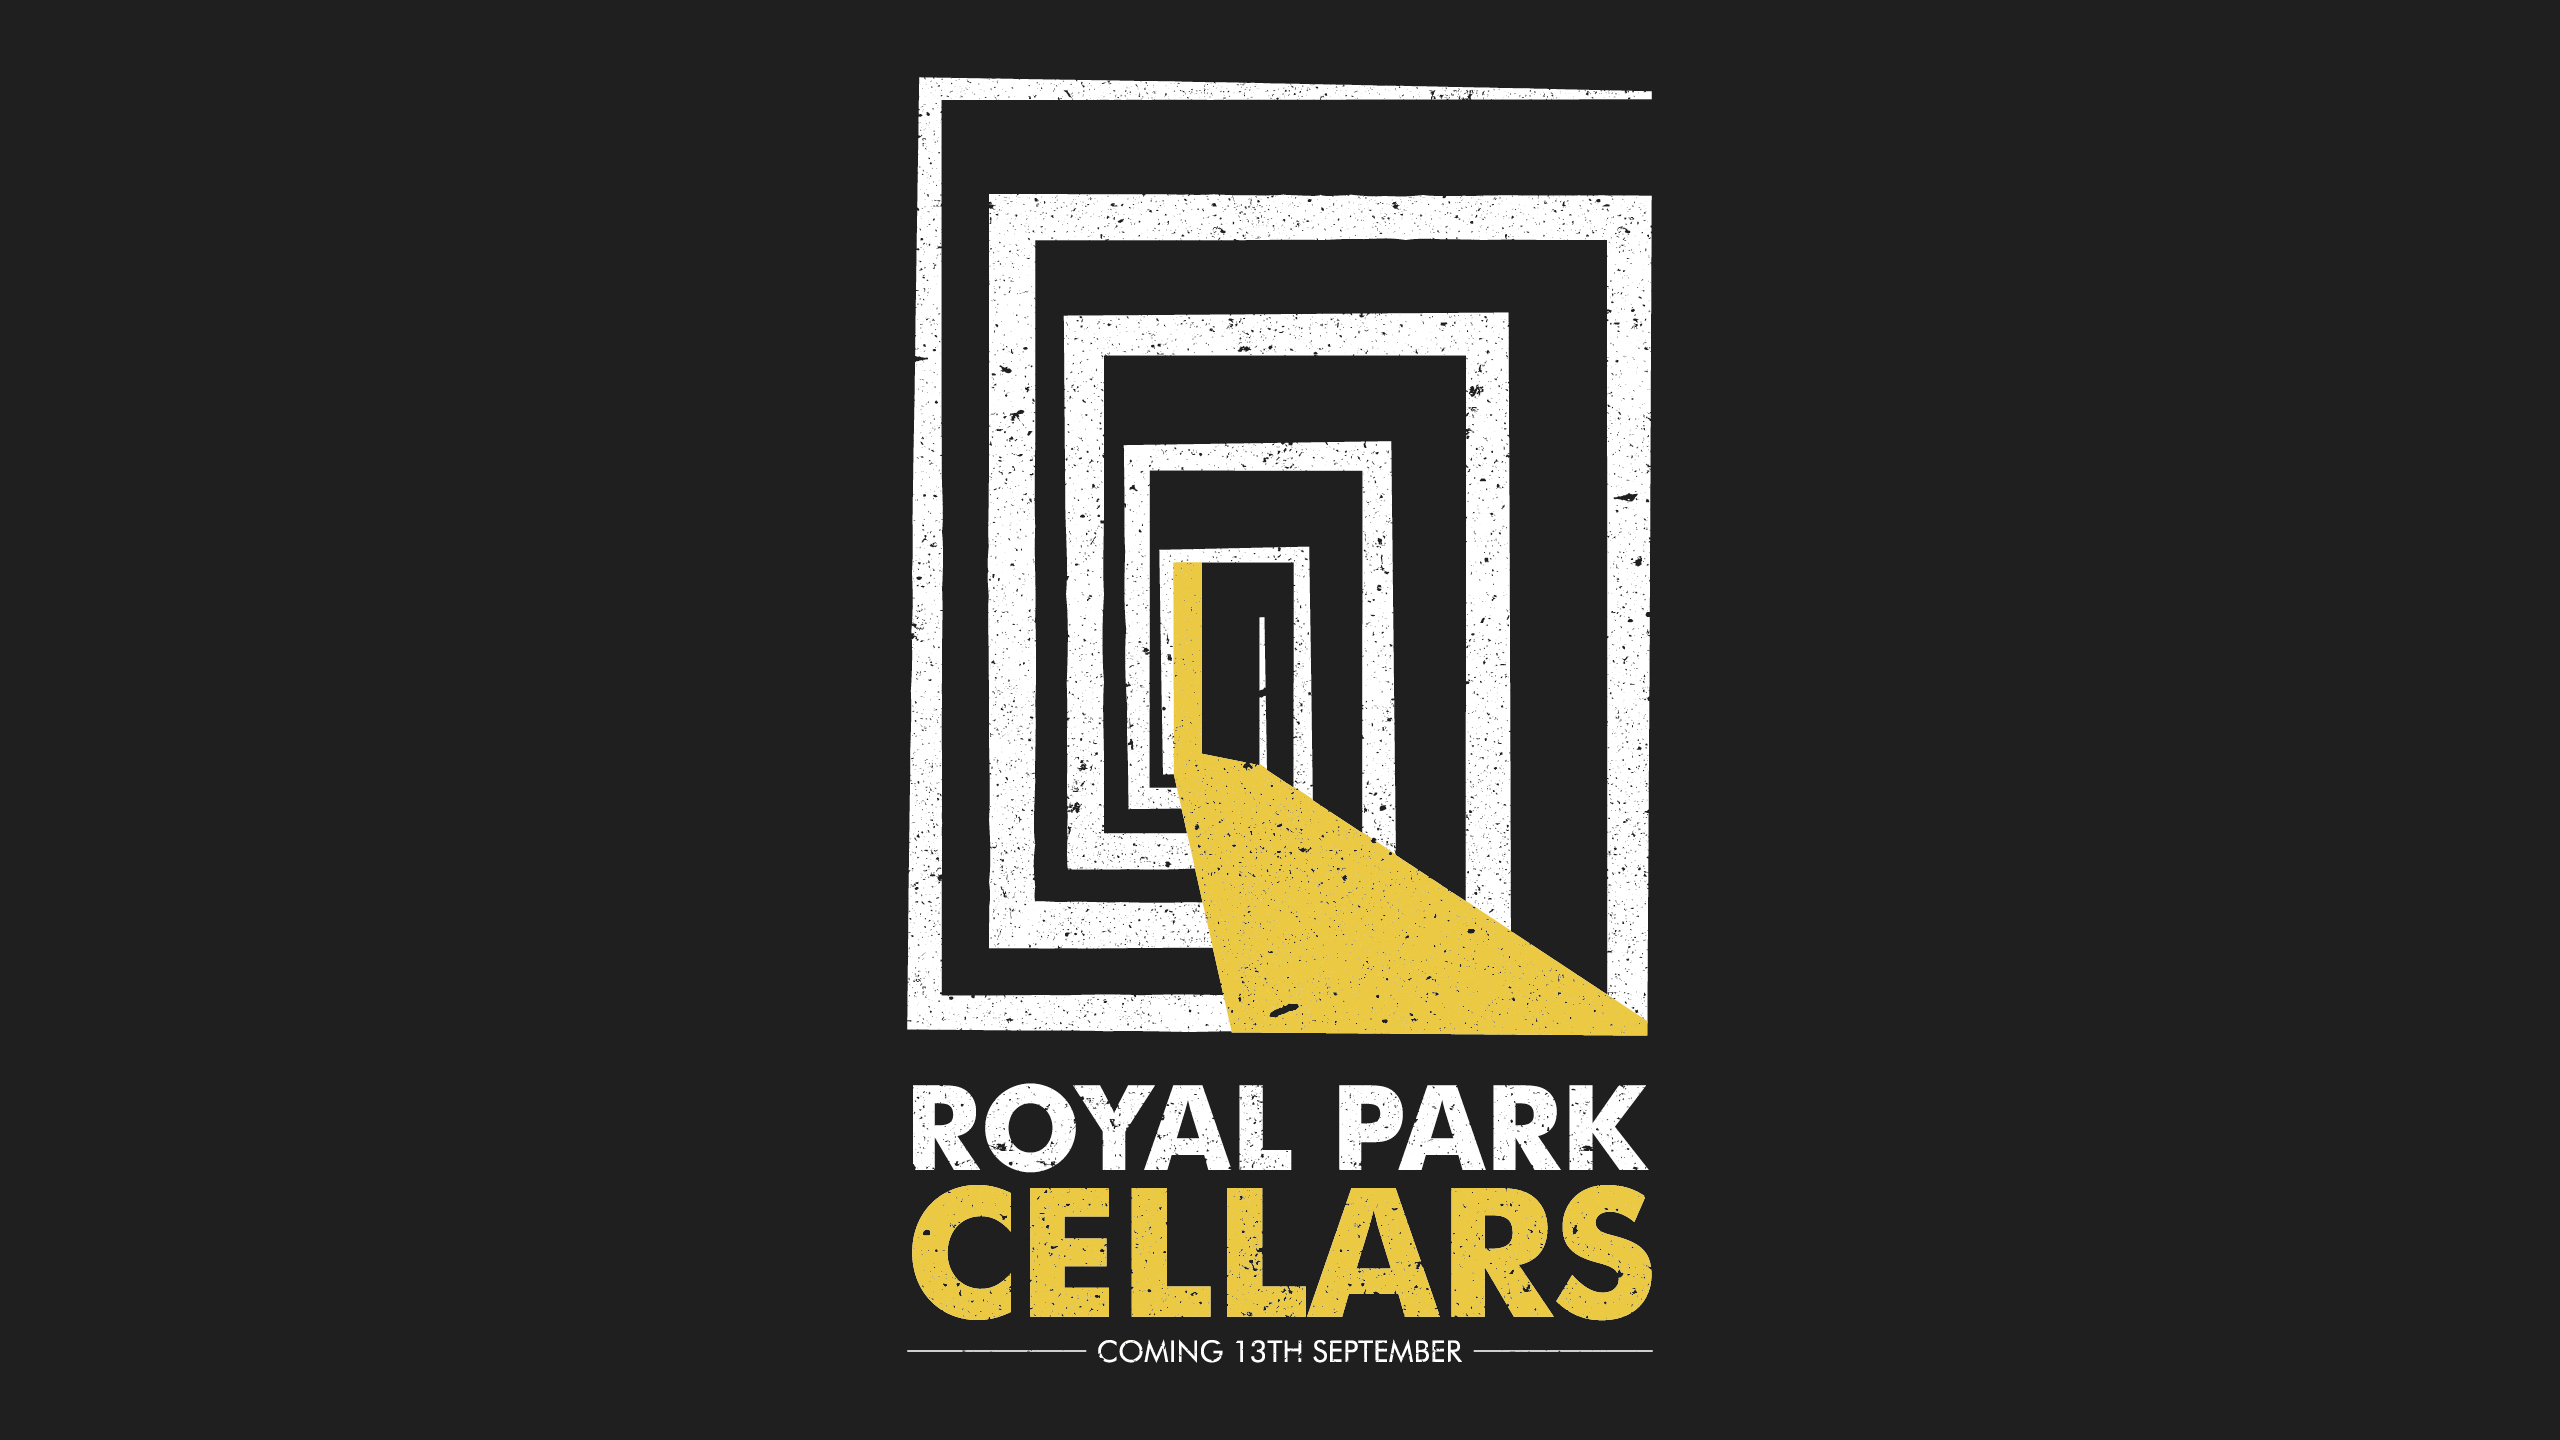 Royal Park Cellars Live Music in Leeds